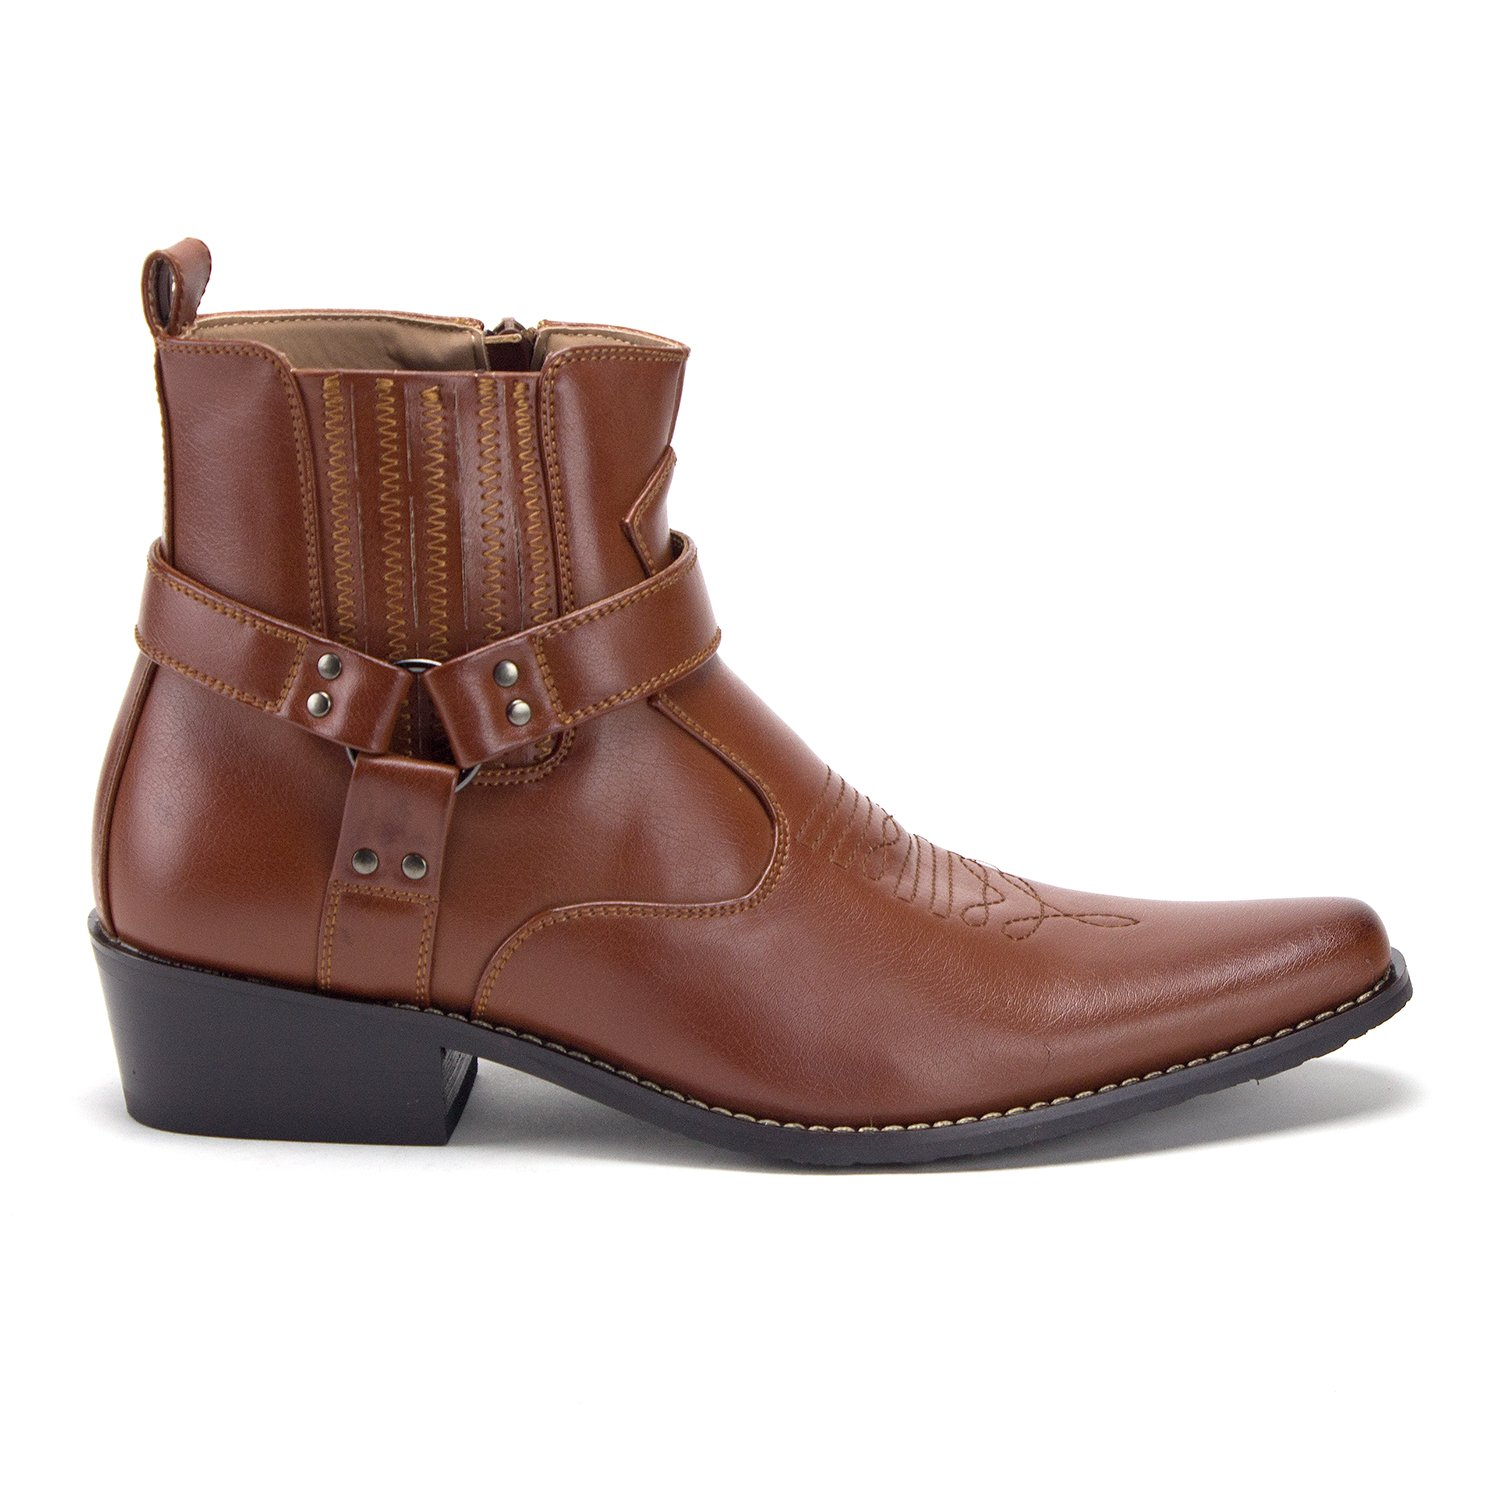 Jazame Mens Western Ankle High Cowboy Motorcycle Riding Pointy Toe Moto Dress Boots